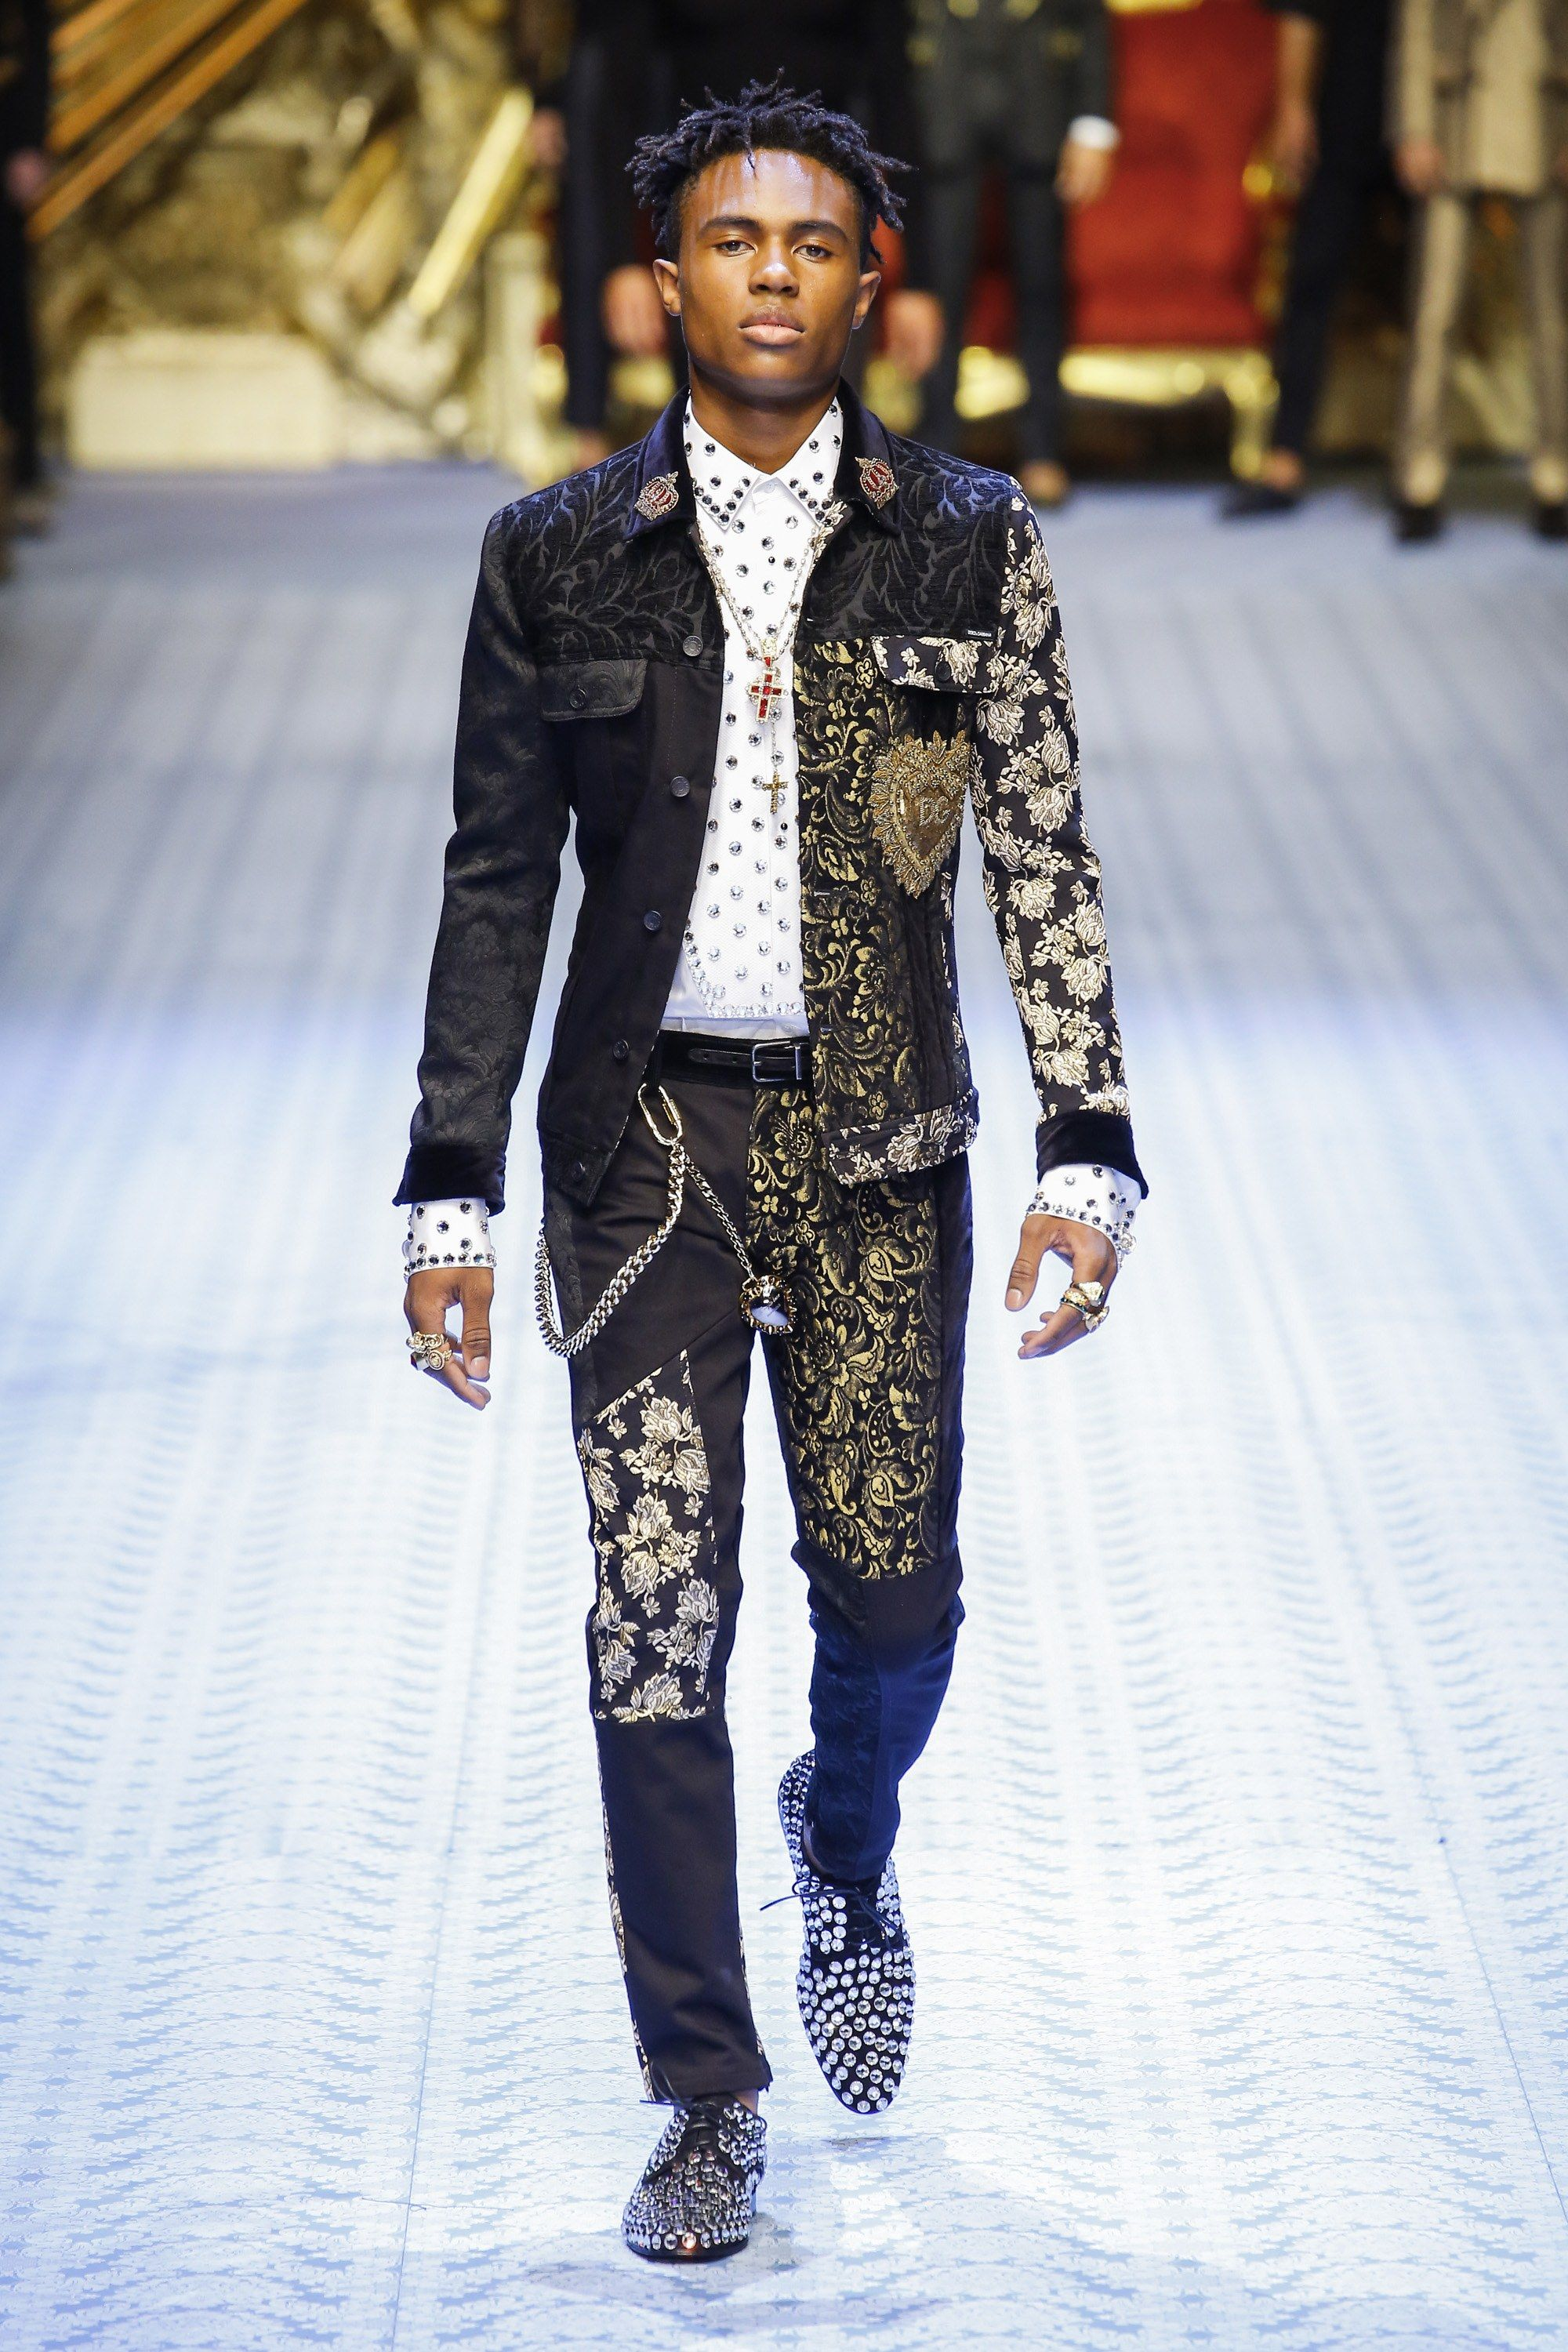 050e2b6bb91c50 MFW: Dolce & Gabbana Spring/Summer 2019 Collection – PAUSE Online | Men's  Fashion, Street Style, Fashion News & Streetwear